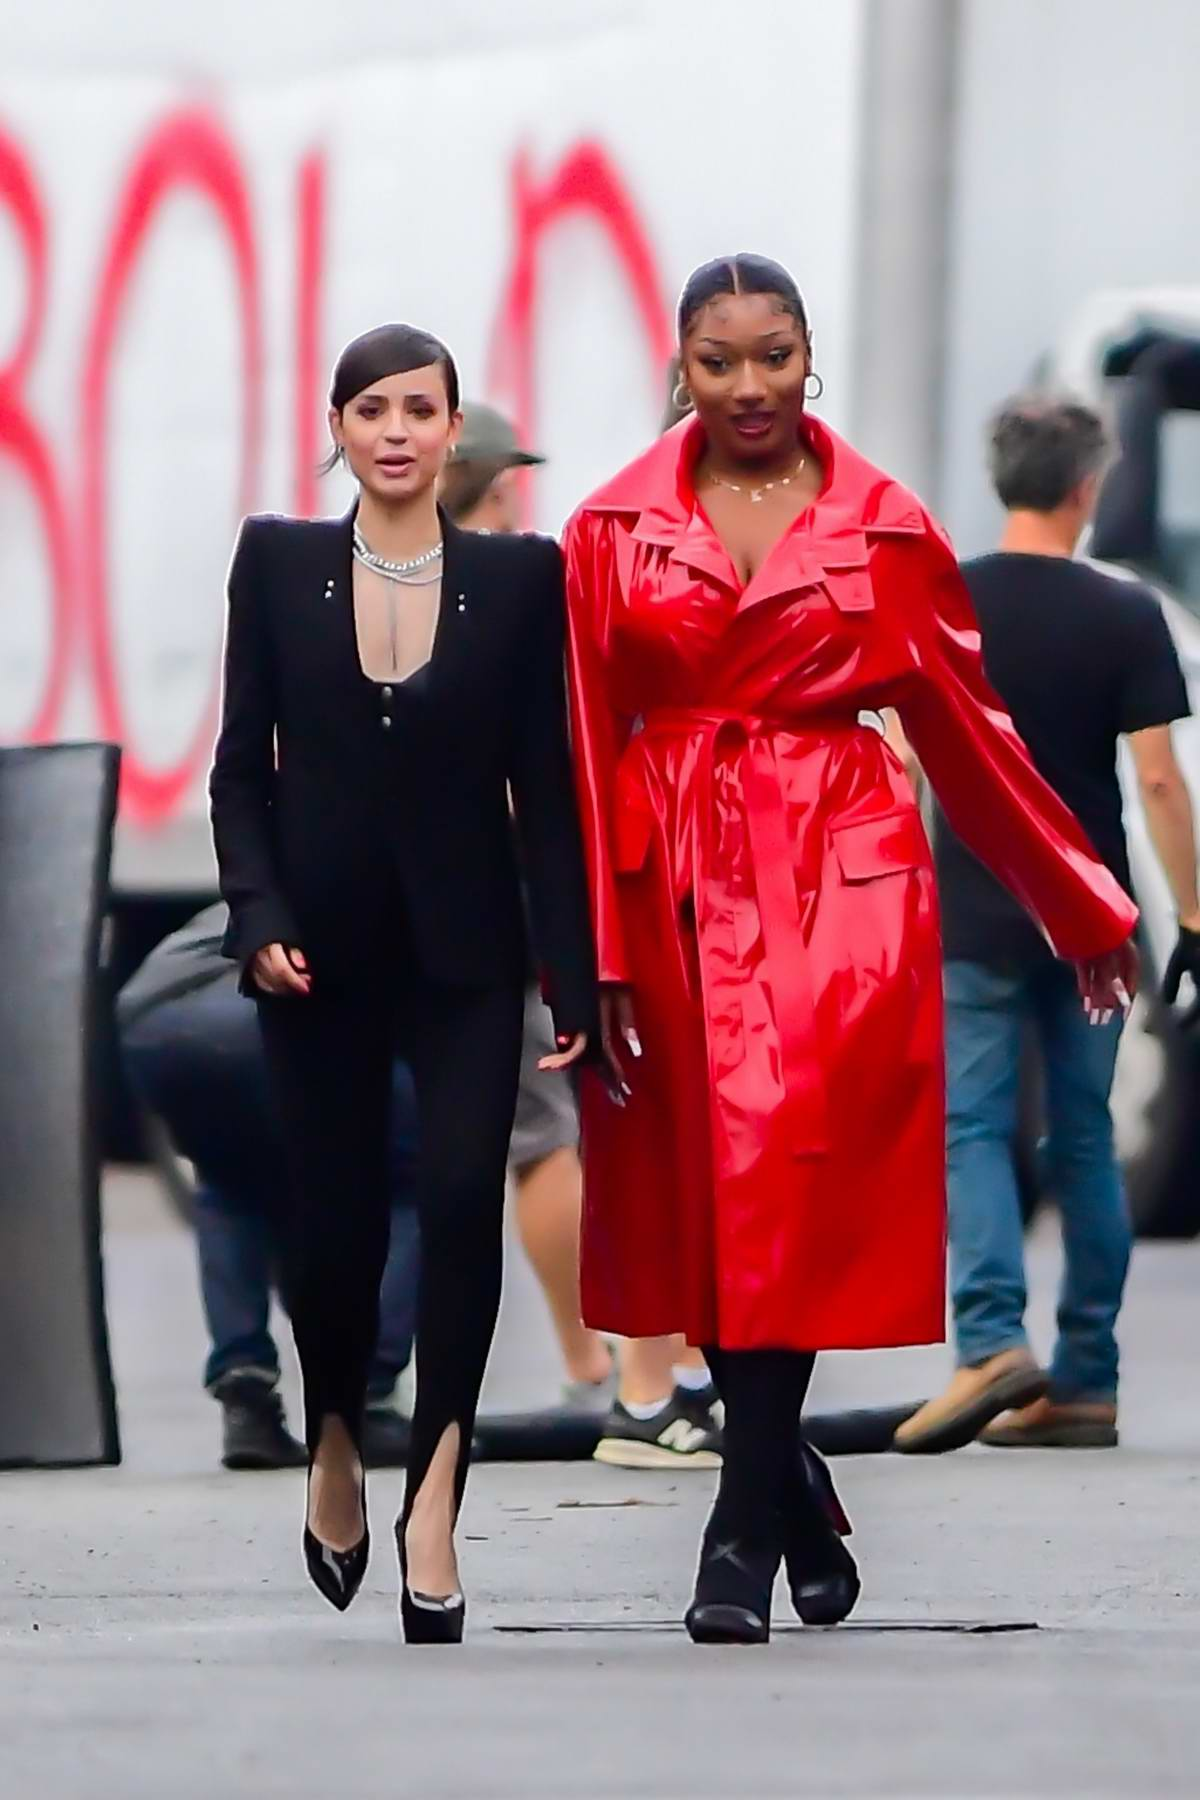 Sofia Carson and Megan Thee Stallion spotted on the set of a Revlon shoot in New York City